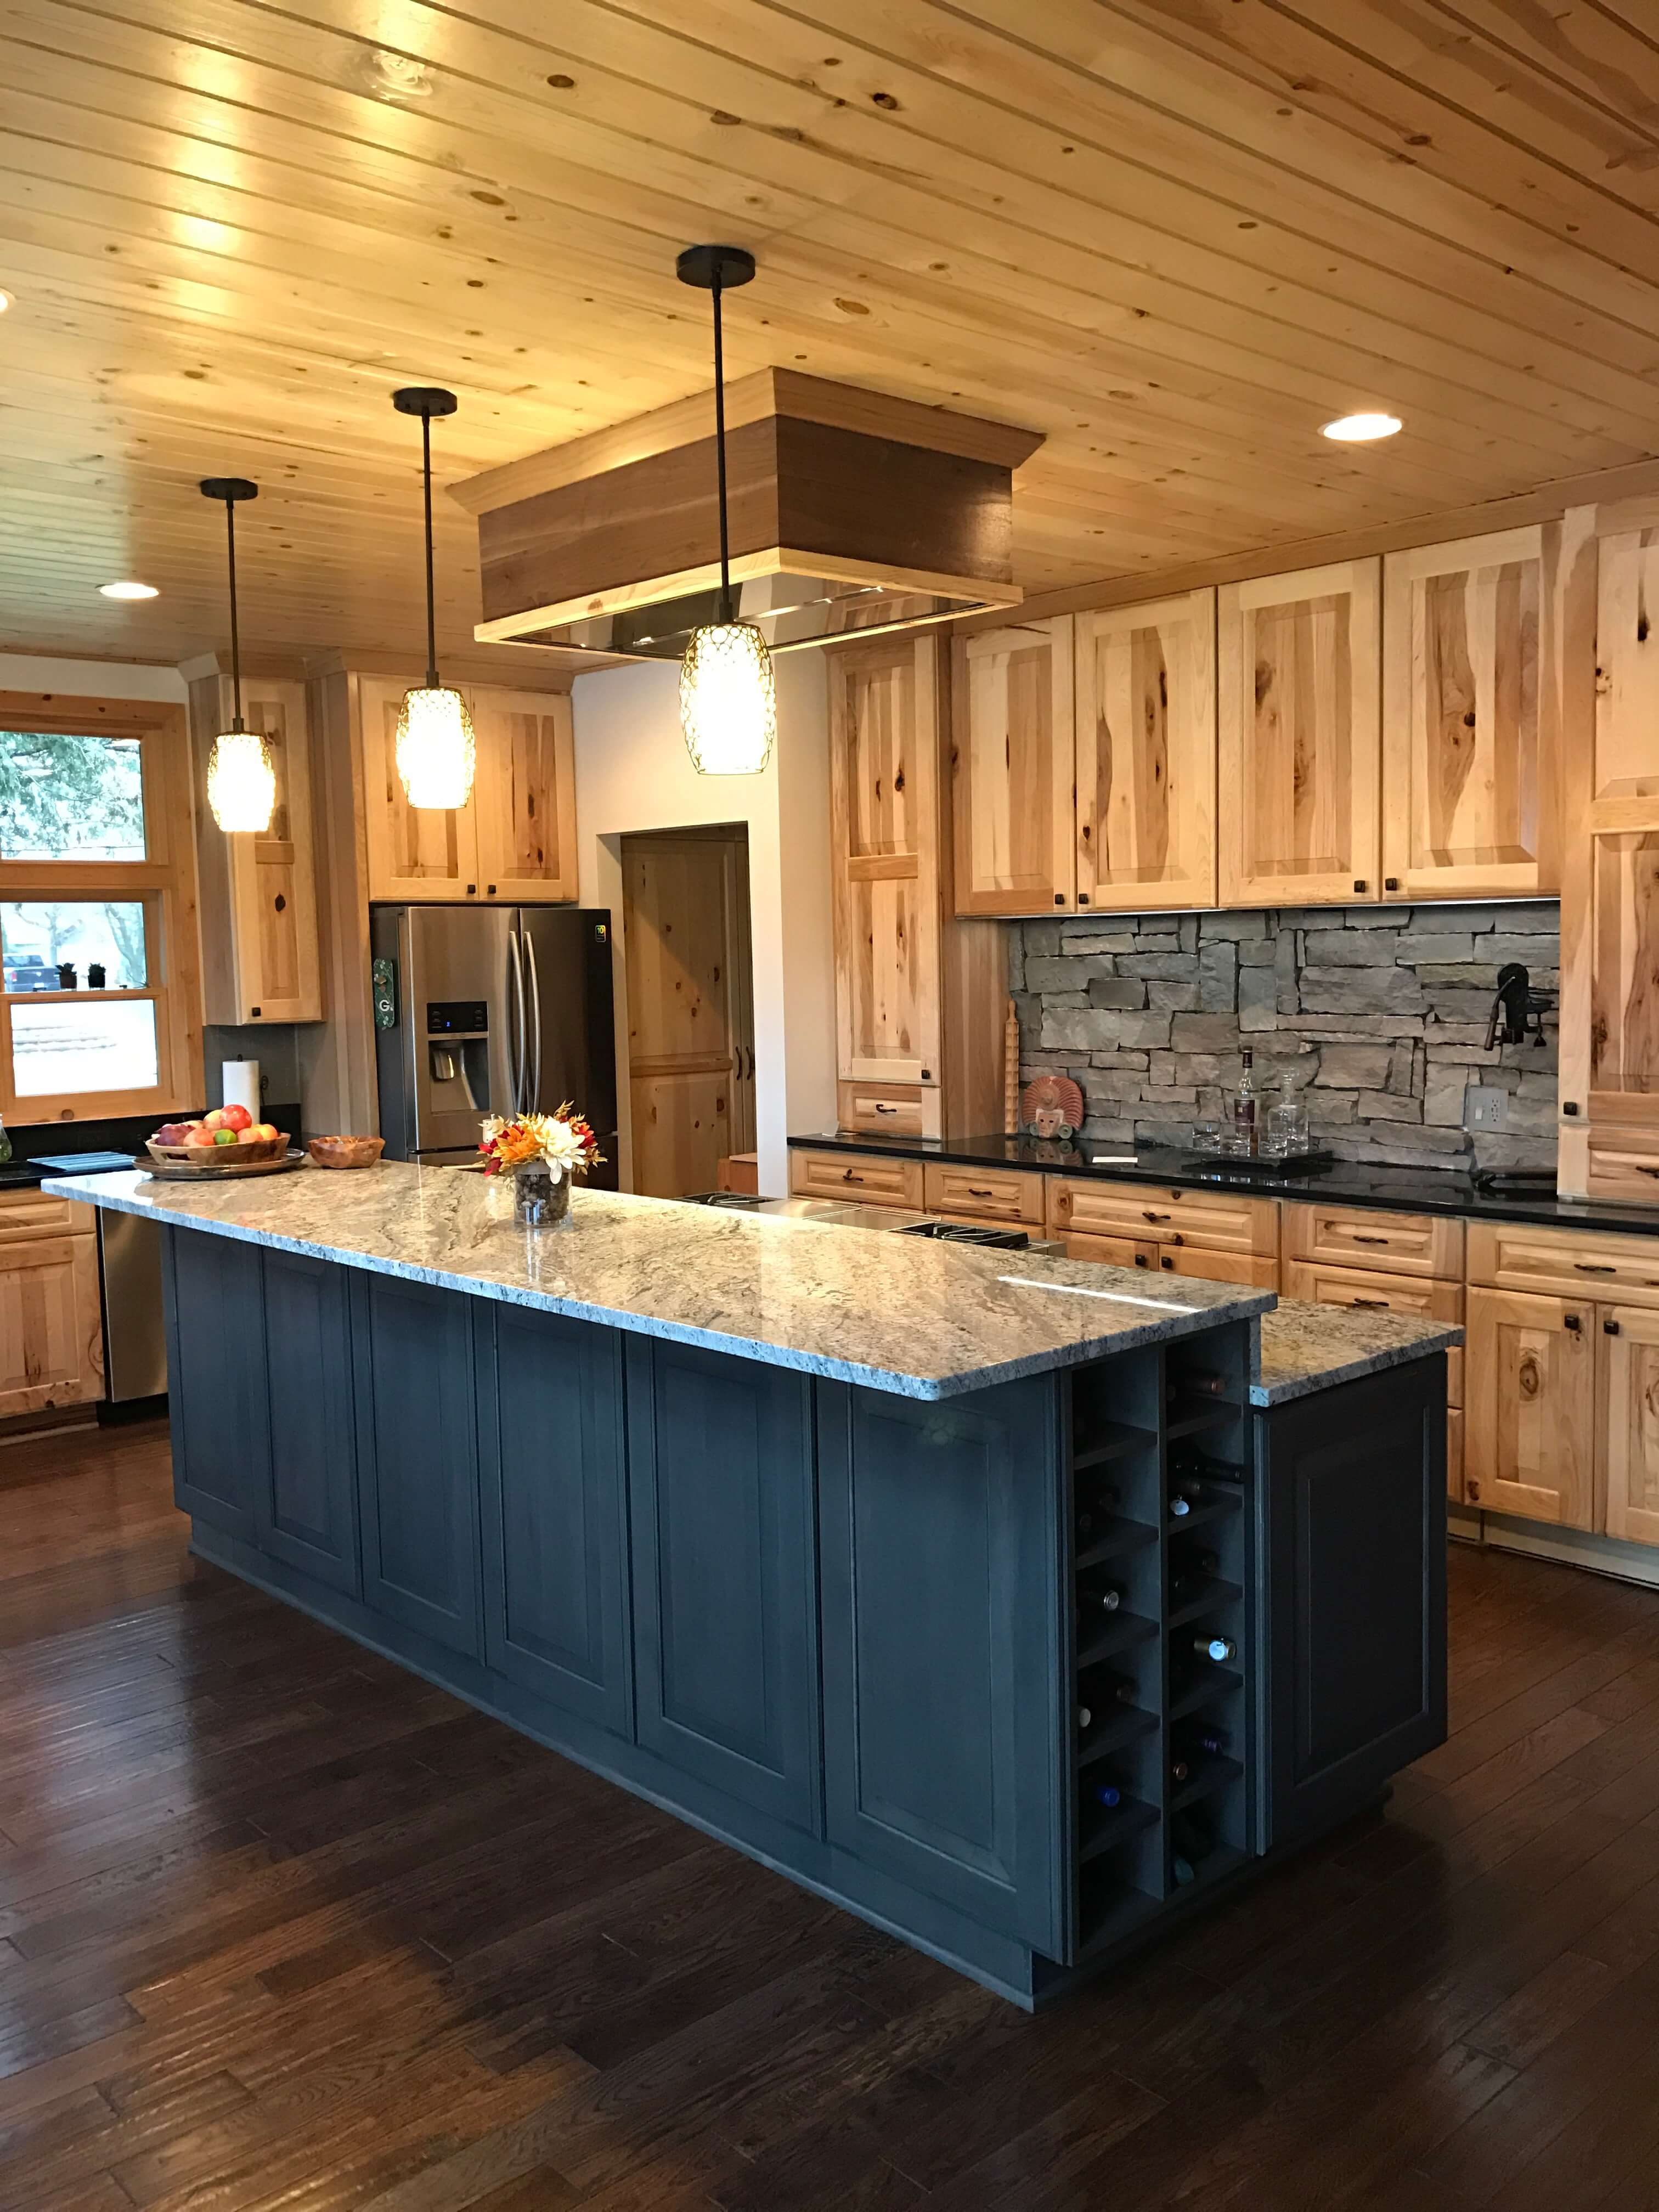 Knotty And Nice Part 2 Explore The Options With Hickory Rustic Hickory Cabinetry Dura Supreme Cabinetry